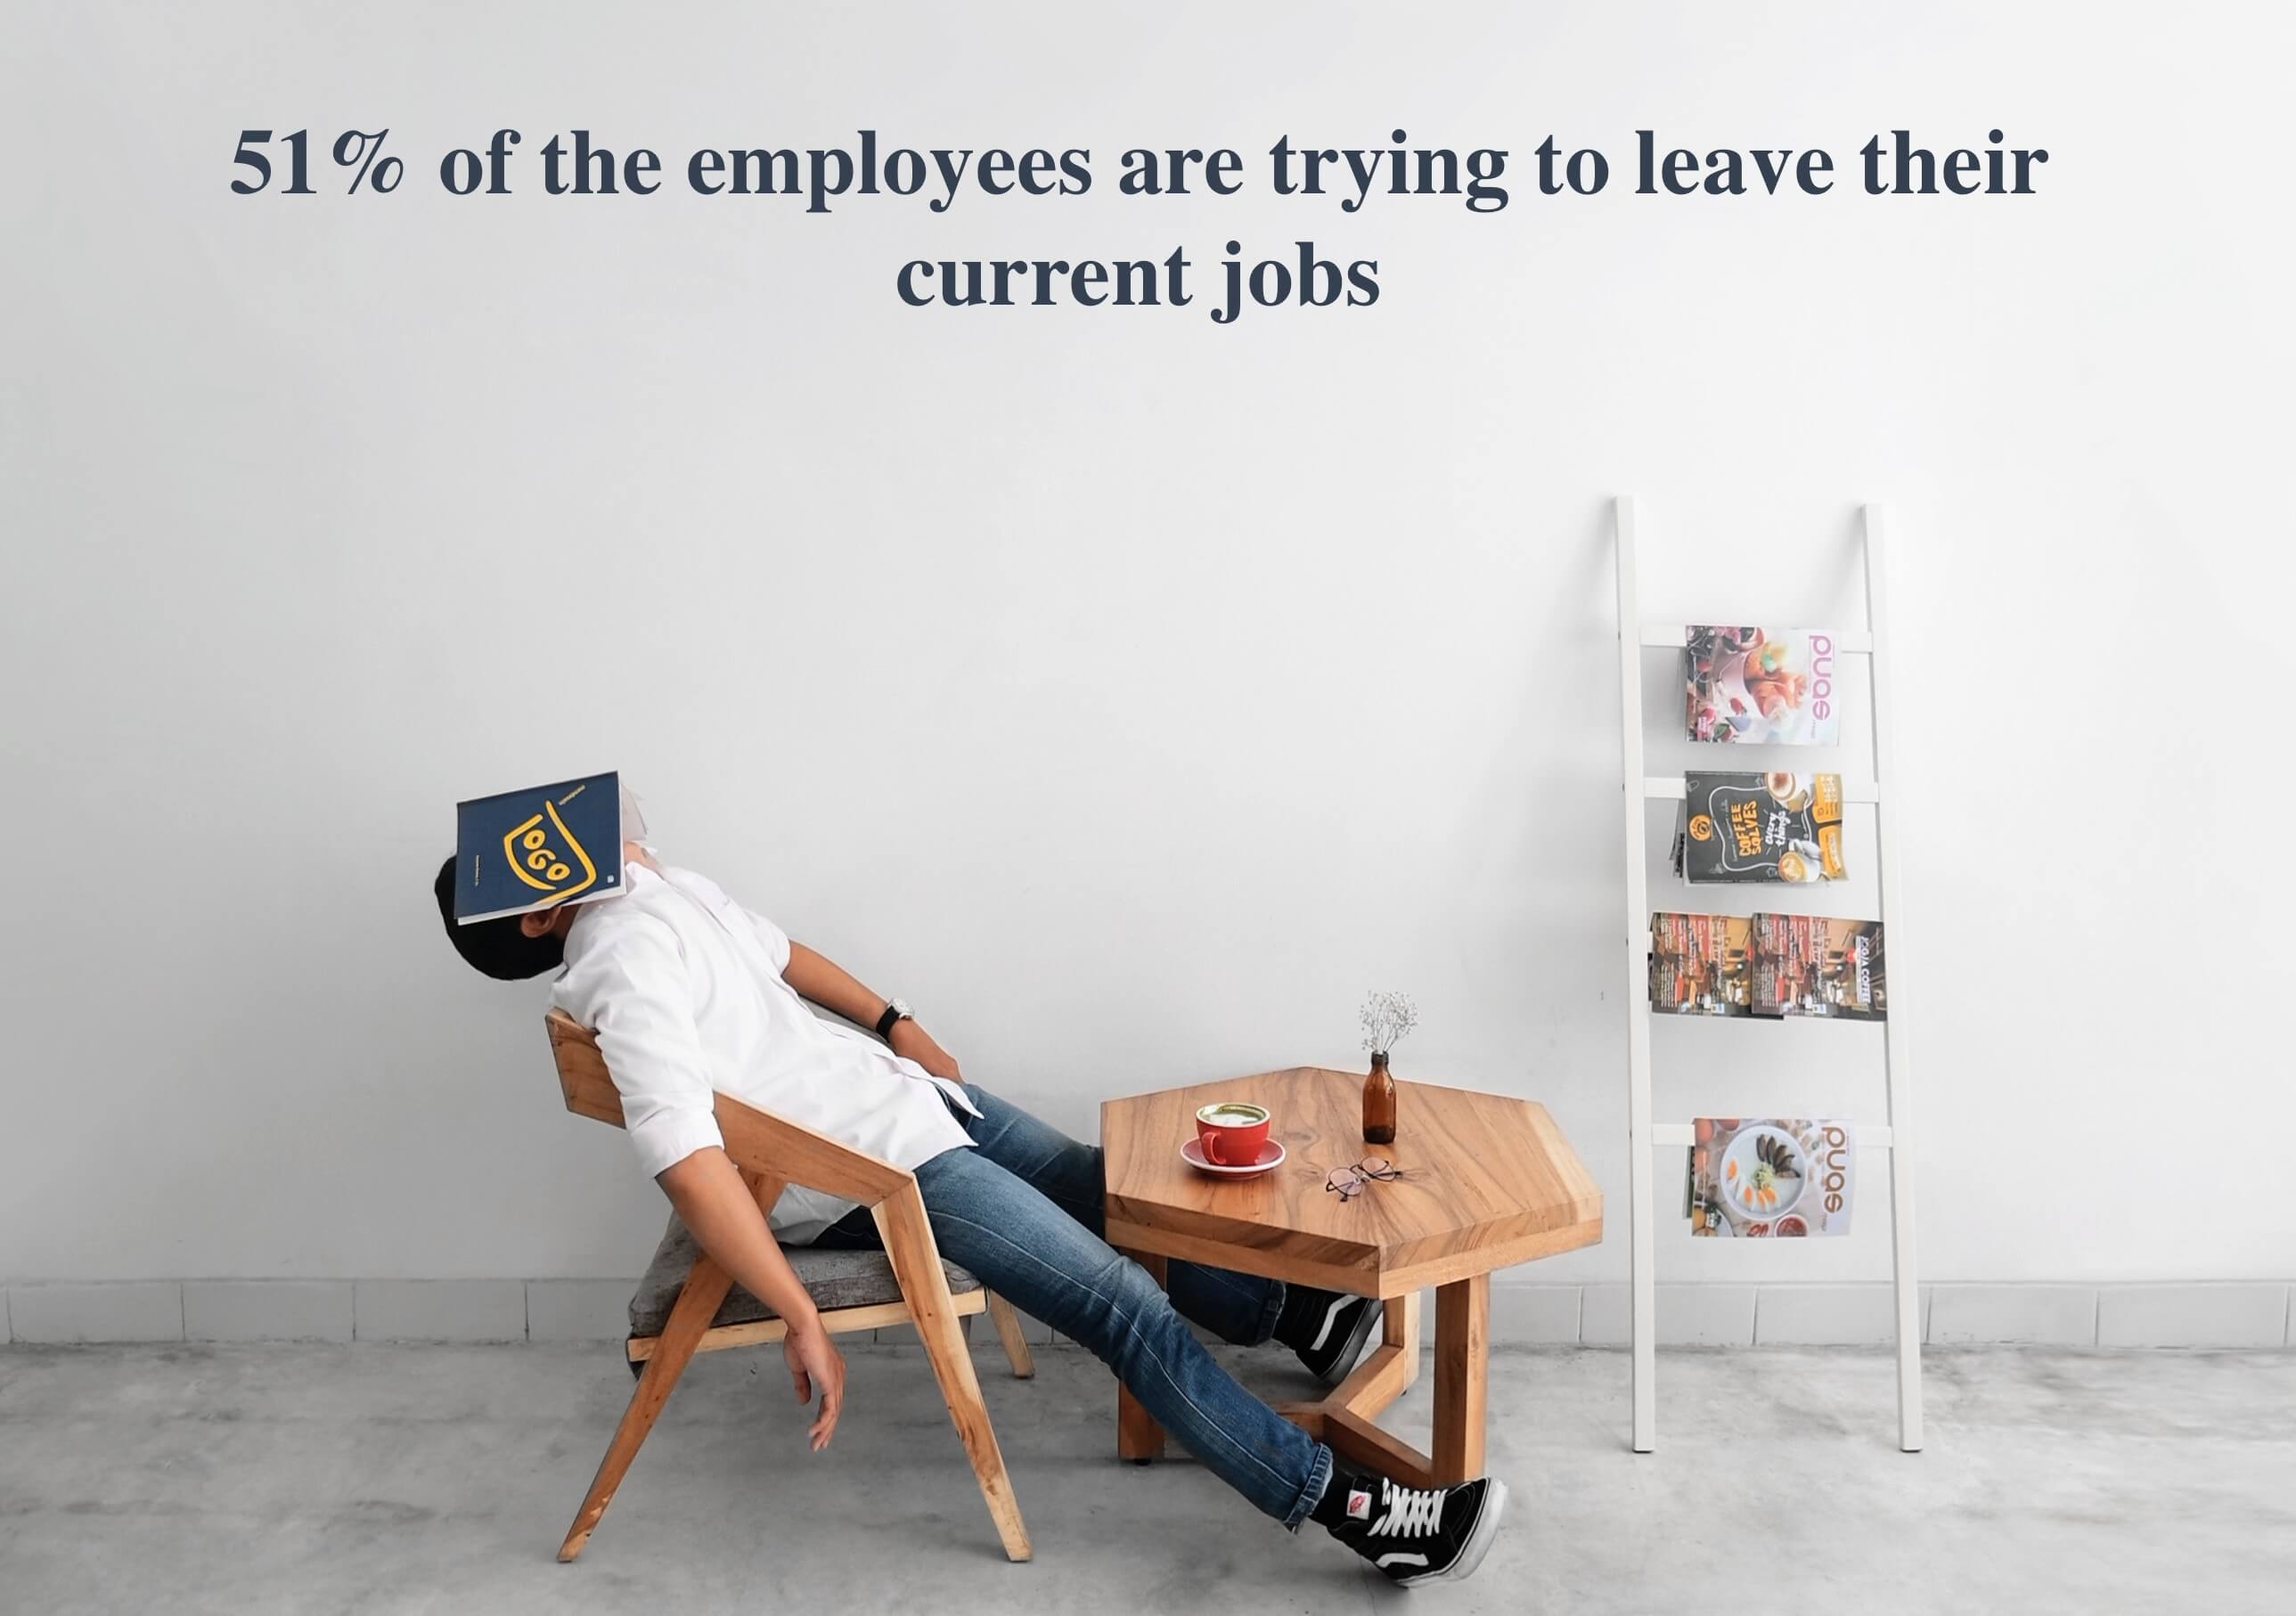 Knowing how to engage employees is critical considering 51% of them are trying to leave their current jobs.